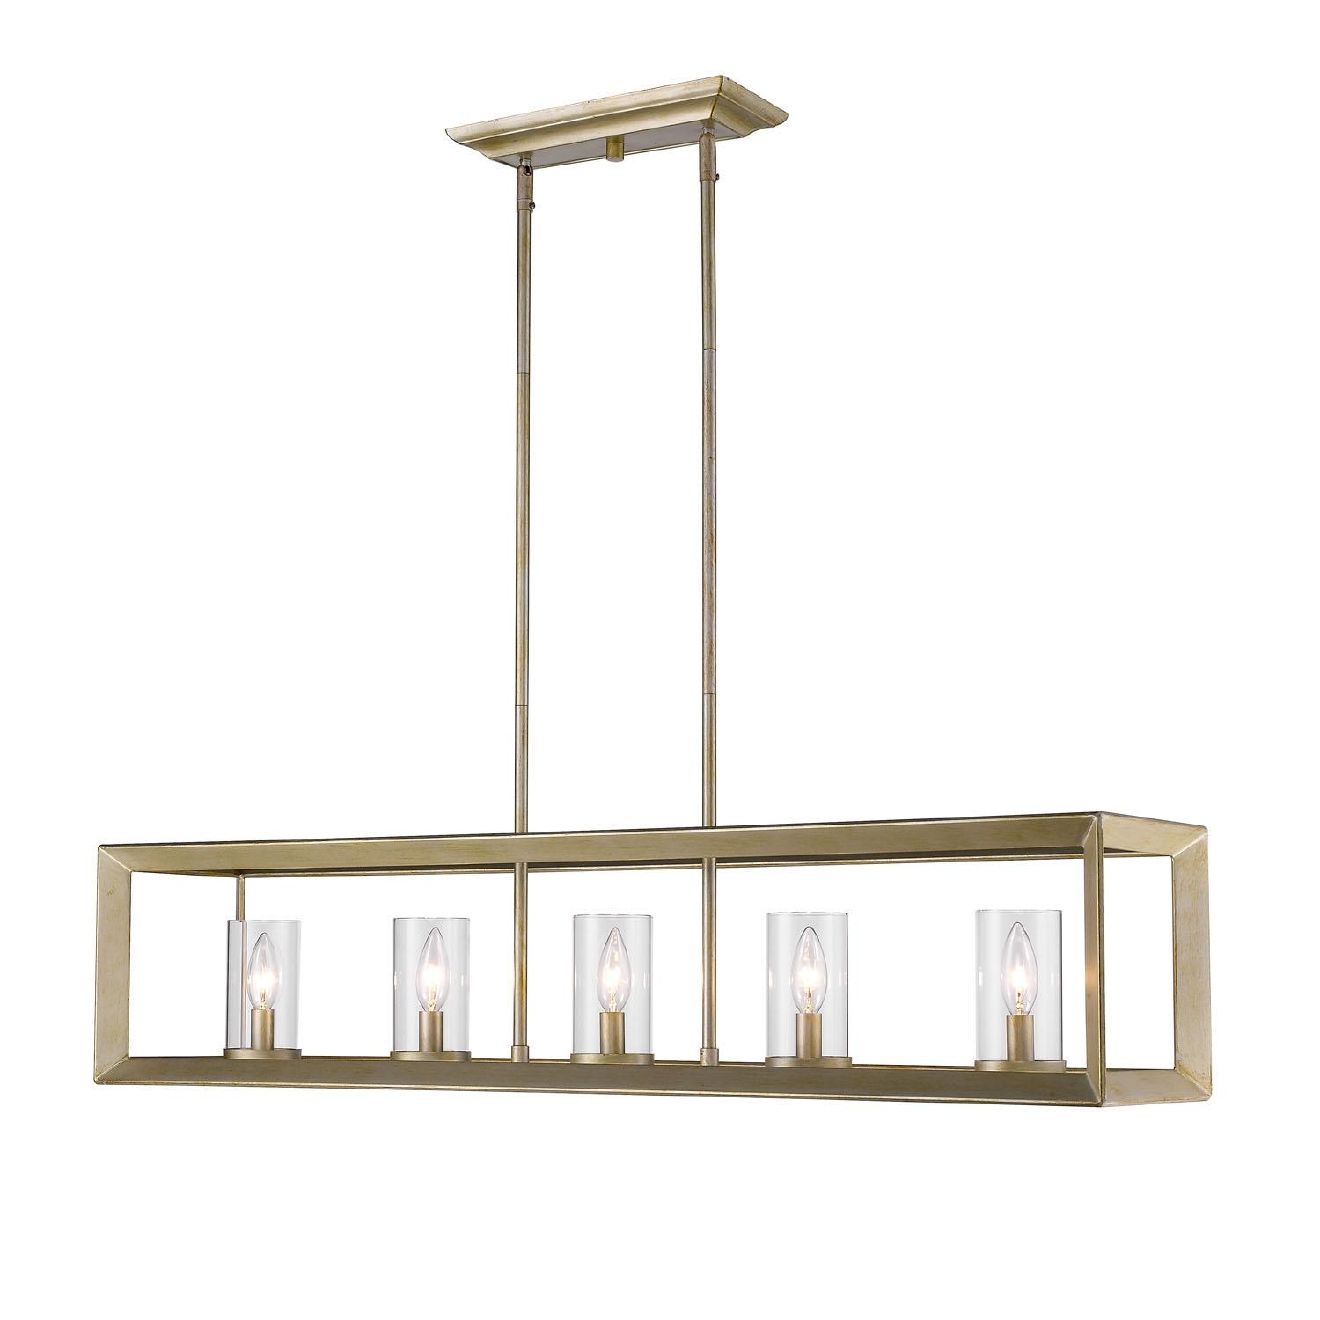 The Smyth 5 Light Chandelier ($345.48) has a handsome bevelled cage design with lean geometry creates a contemporary style. (Image: Wayfair)